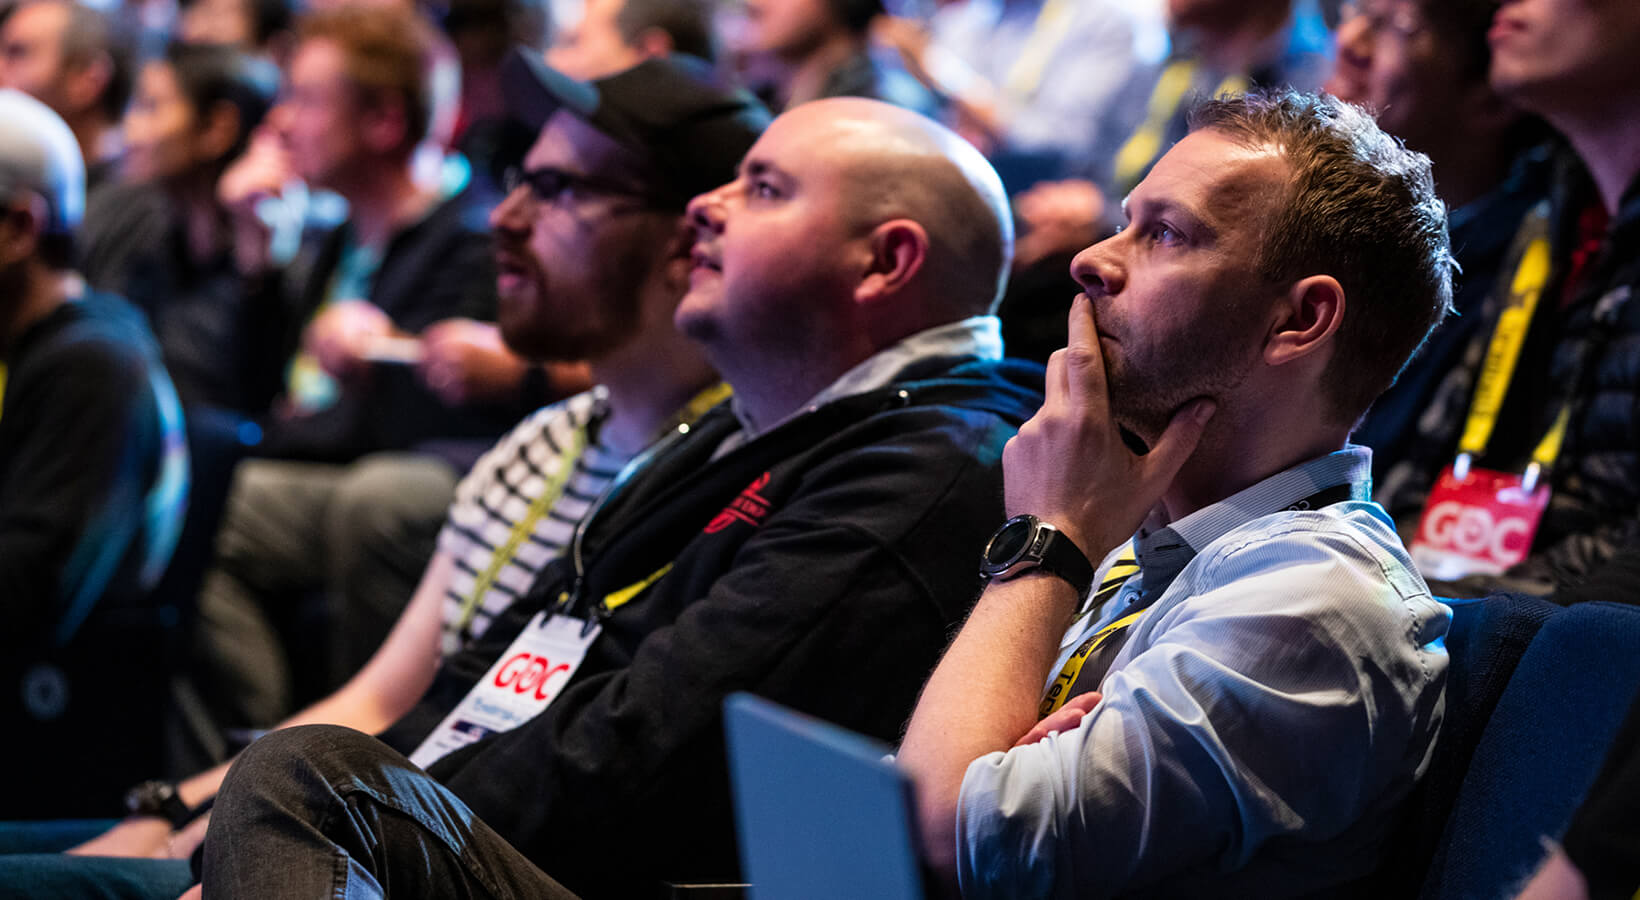 Find out What's Next at GDC 2020!